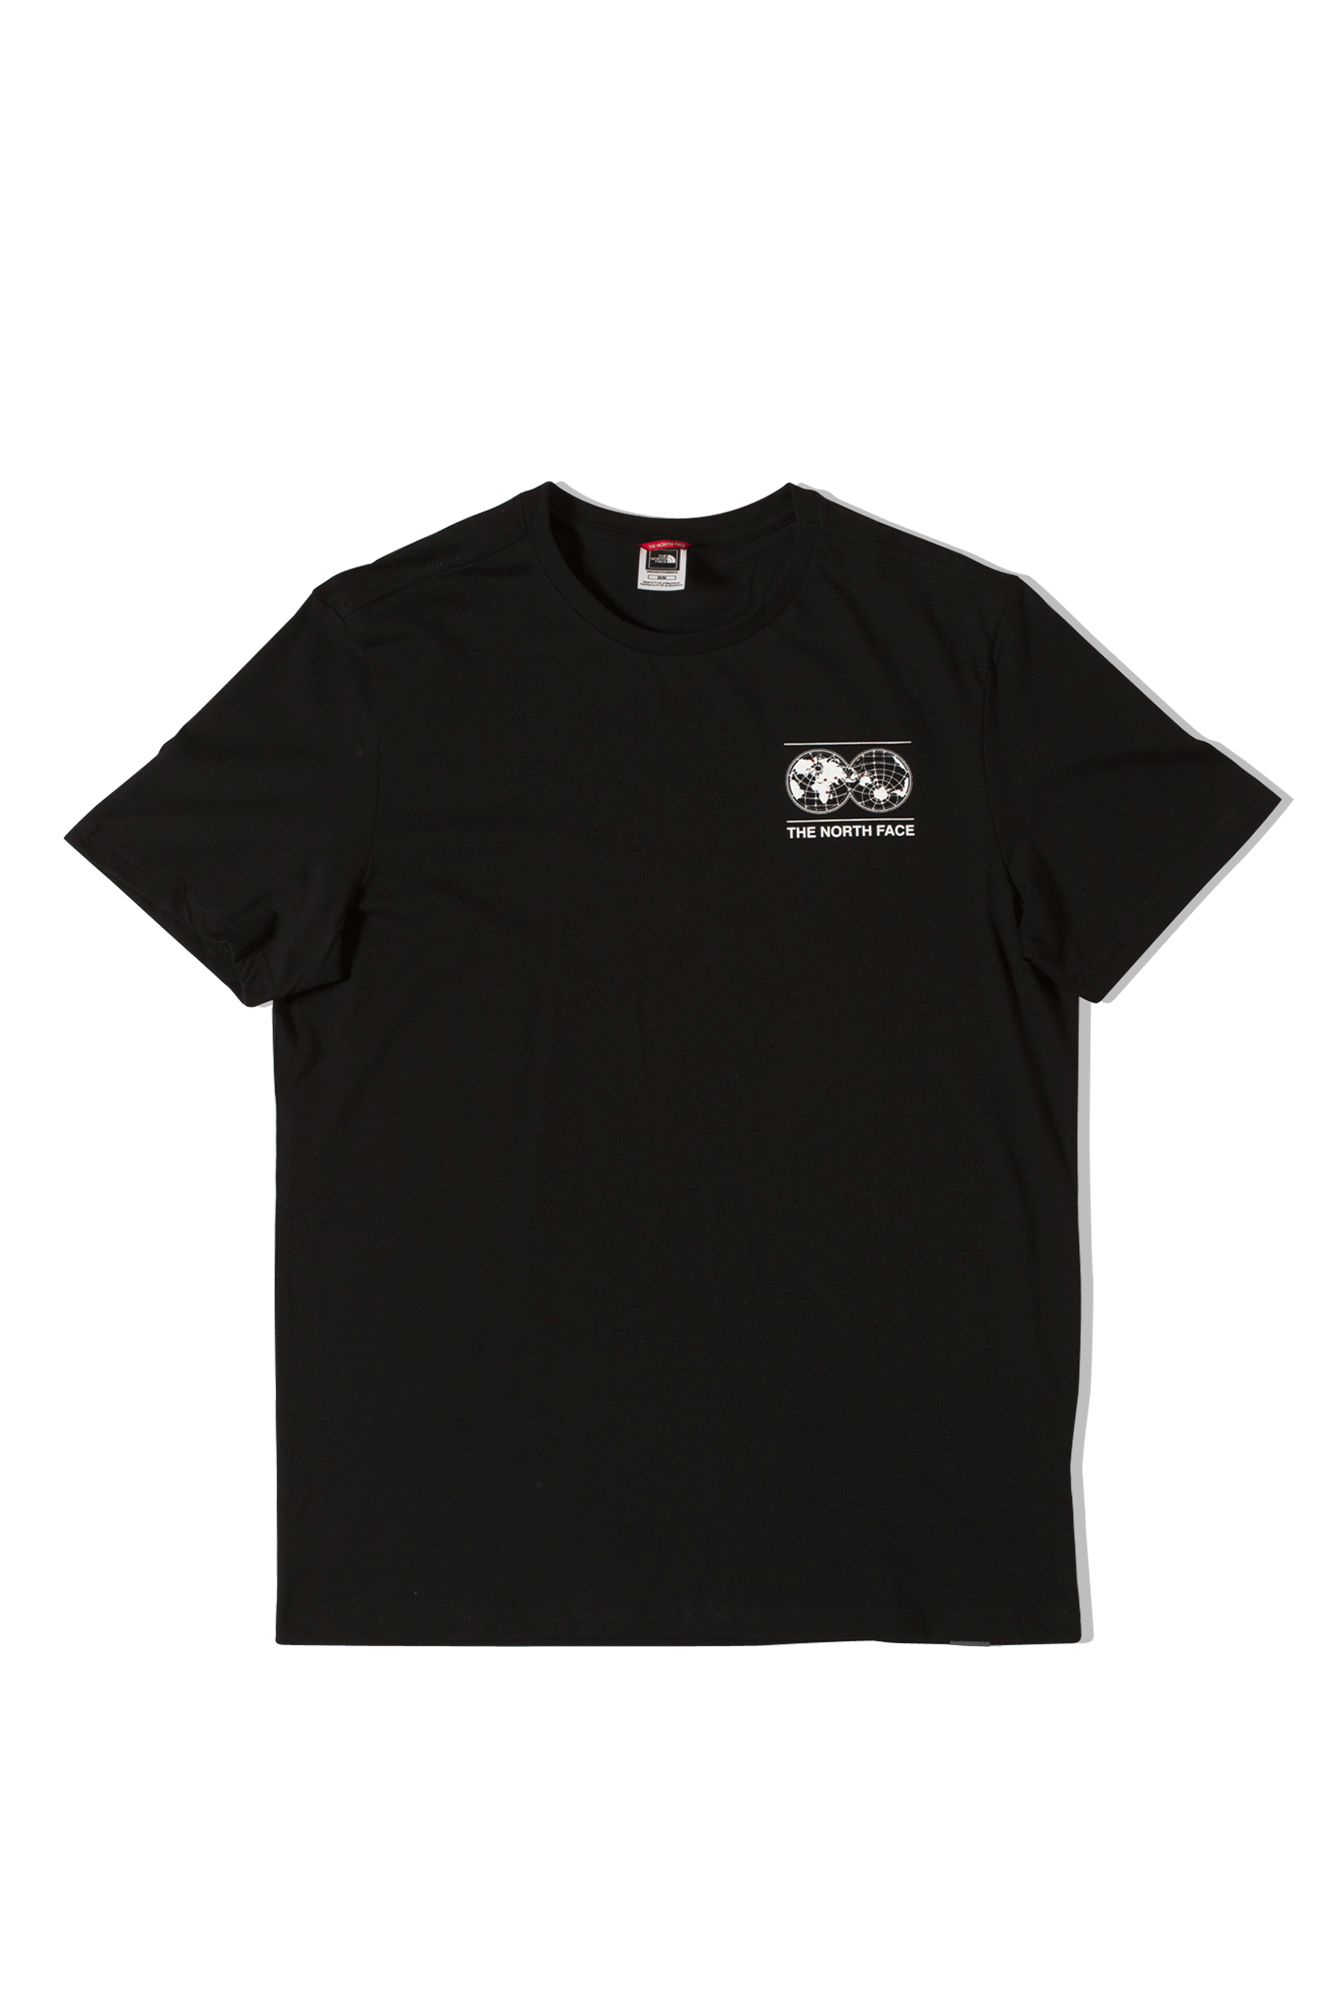 The North Face T-Shirts 7SE S/S Graphic Tee Nero T93Y14JK3#000#JK3#XS - One Block Down